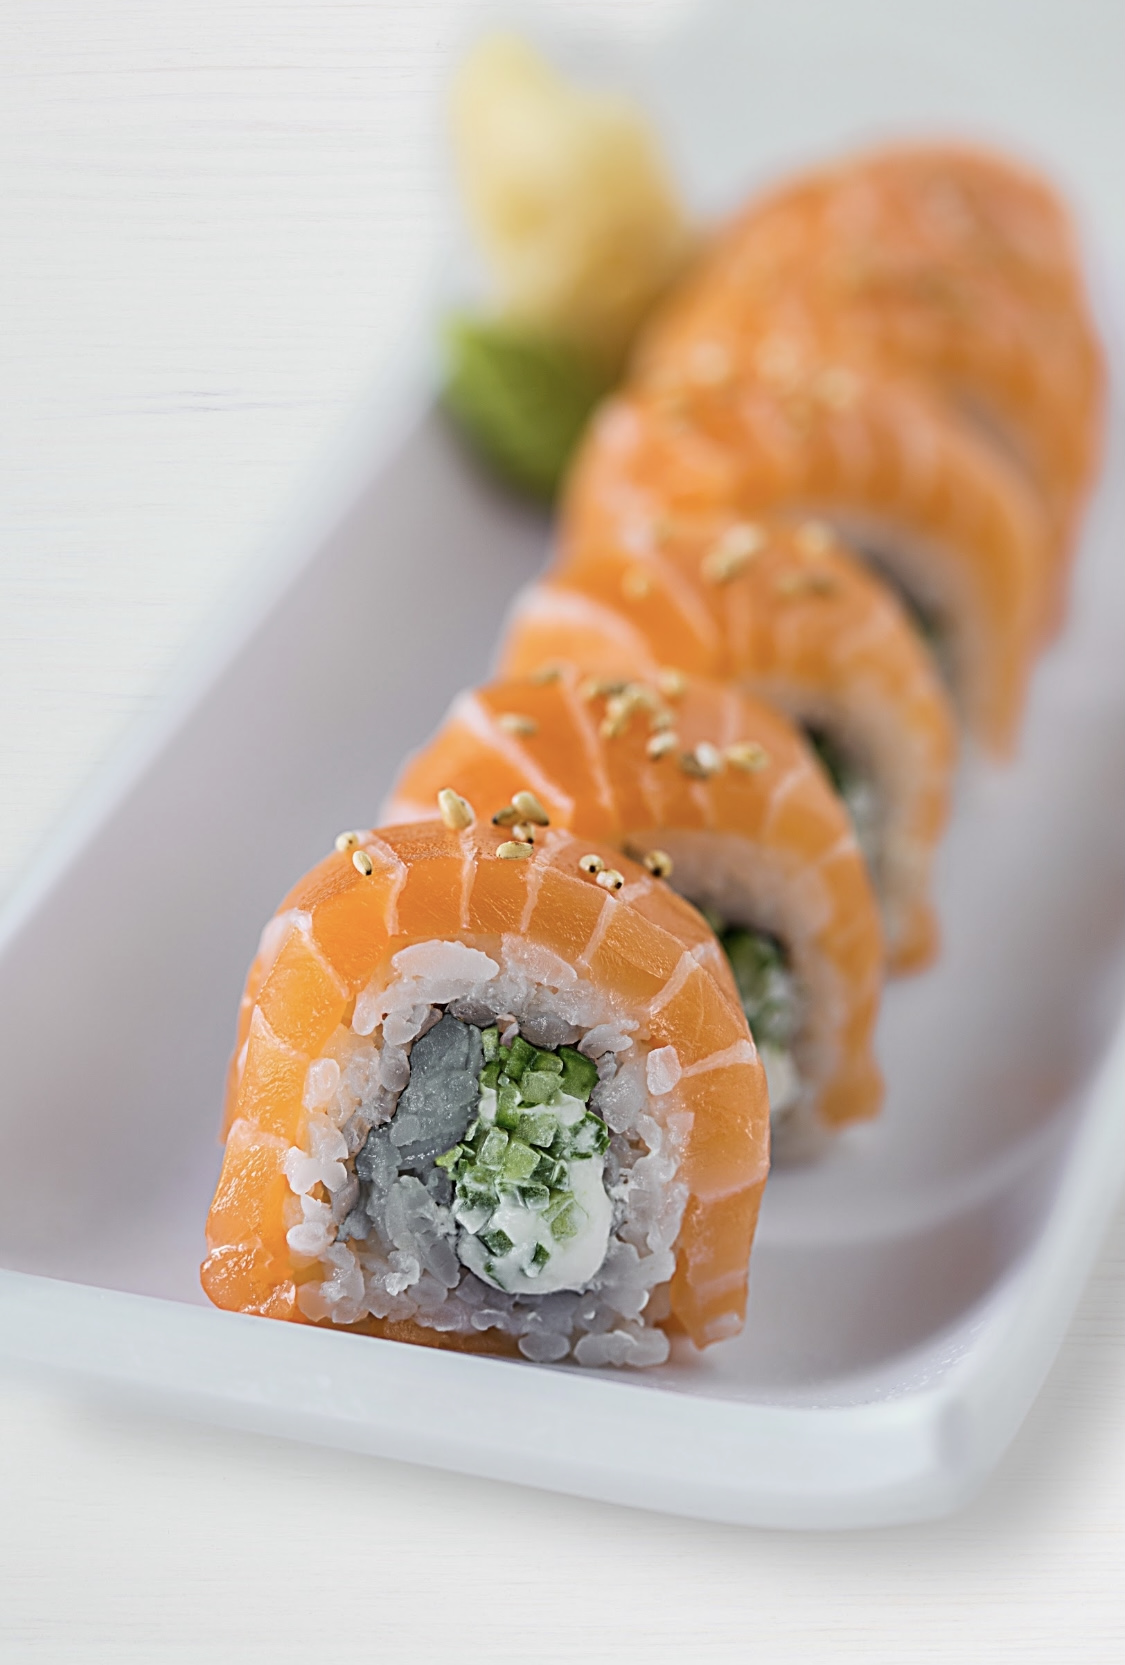 Philly Maki Roll